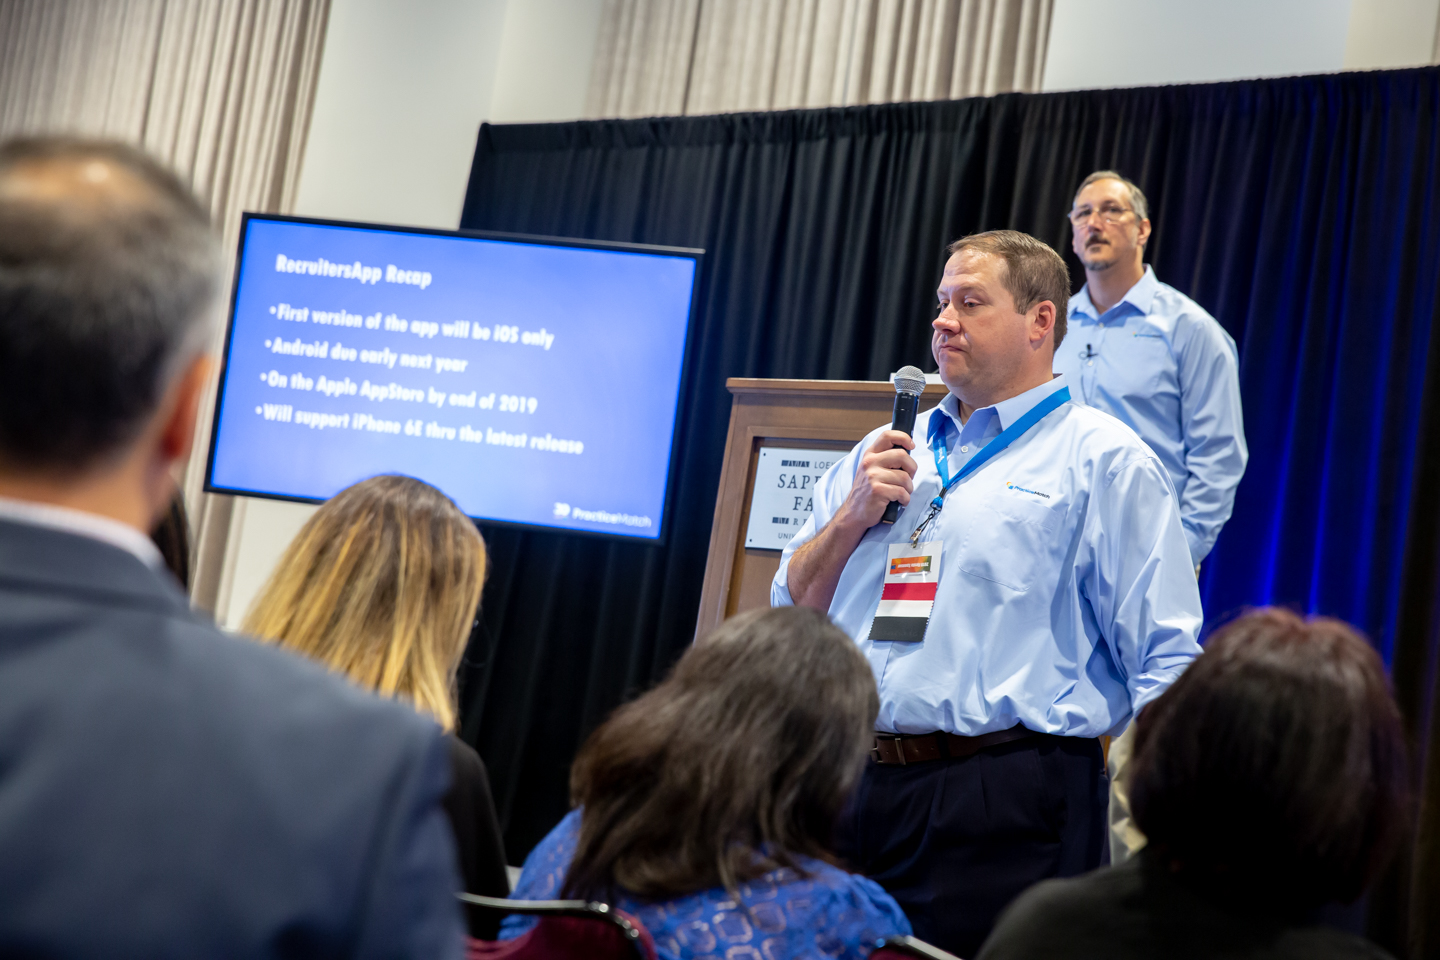 AAPPR-Conference-Expo-Professional-Event-Photography-Photographer-Orlando-give-away-28.jpg